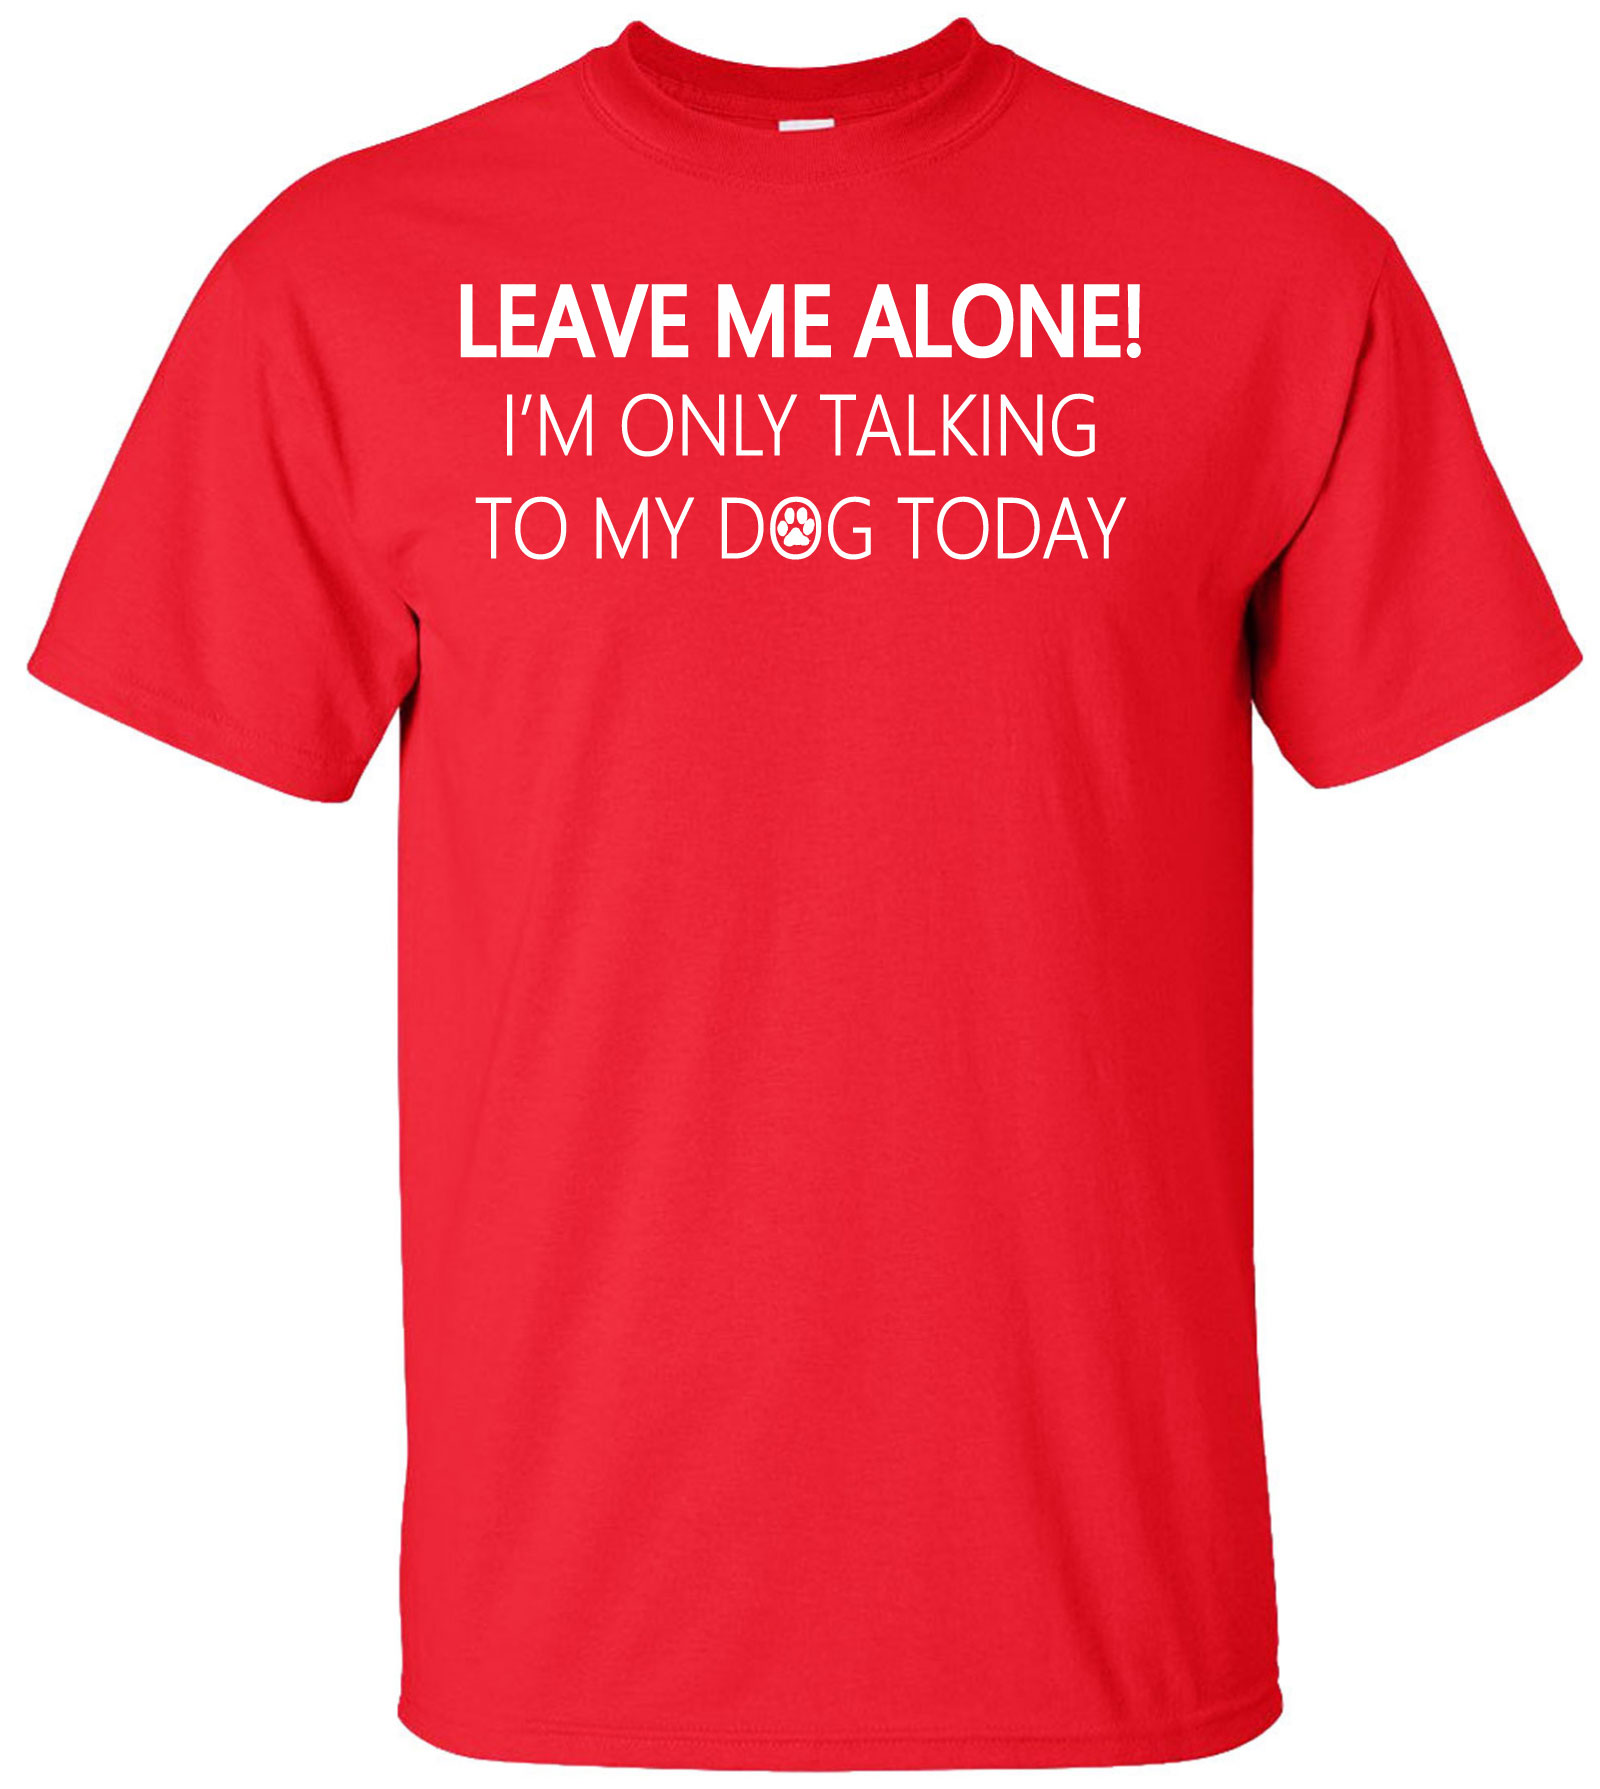 I/'m Only Speaking To My FERRET Today Funny T-Shirt Leave Me Alone